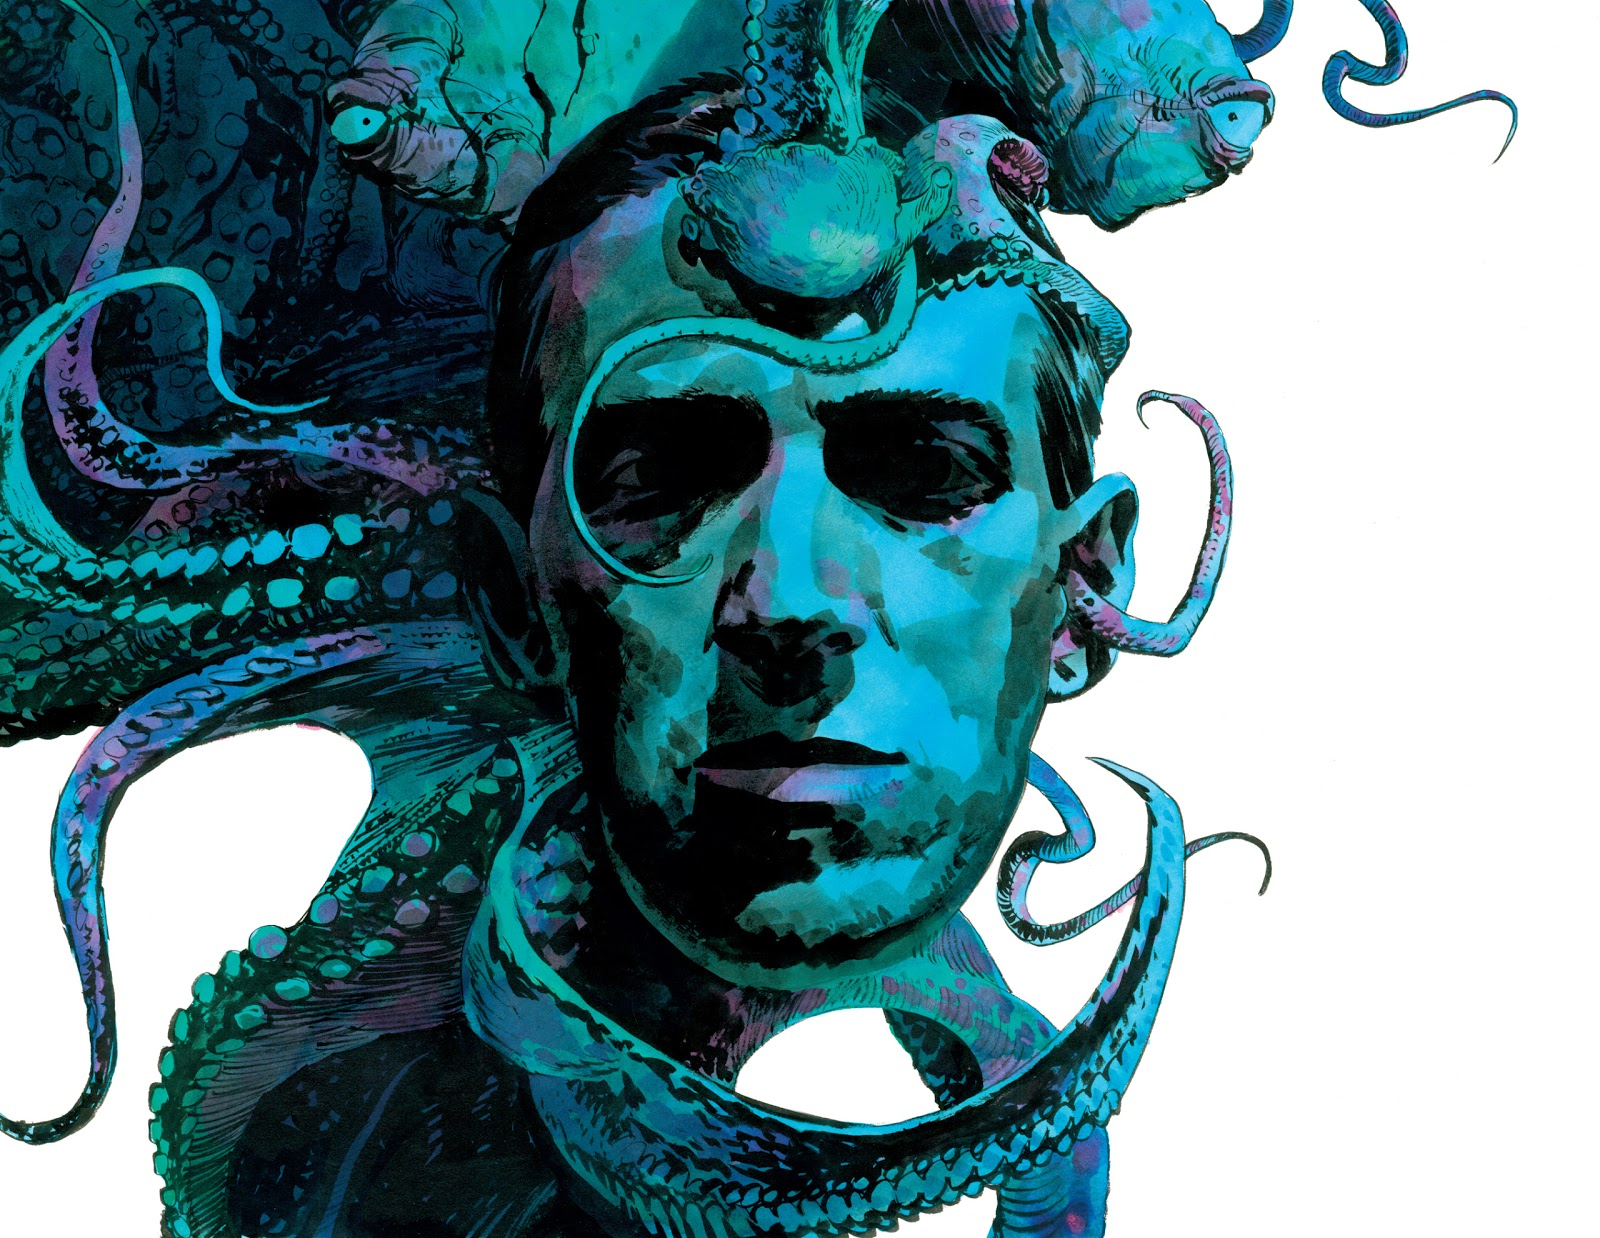 Hp Lovecraft Art Wallpapers: The Art Of Sean Phillips: H P Lovecraft